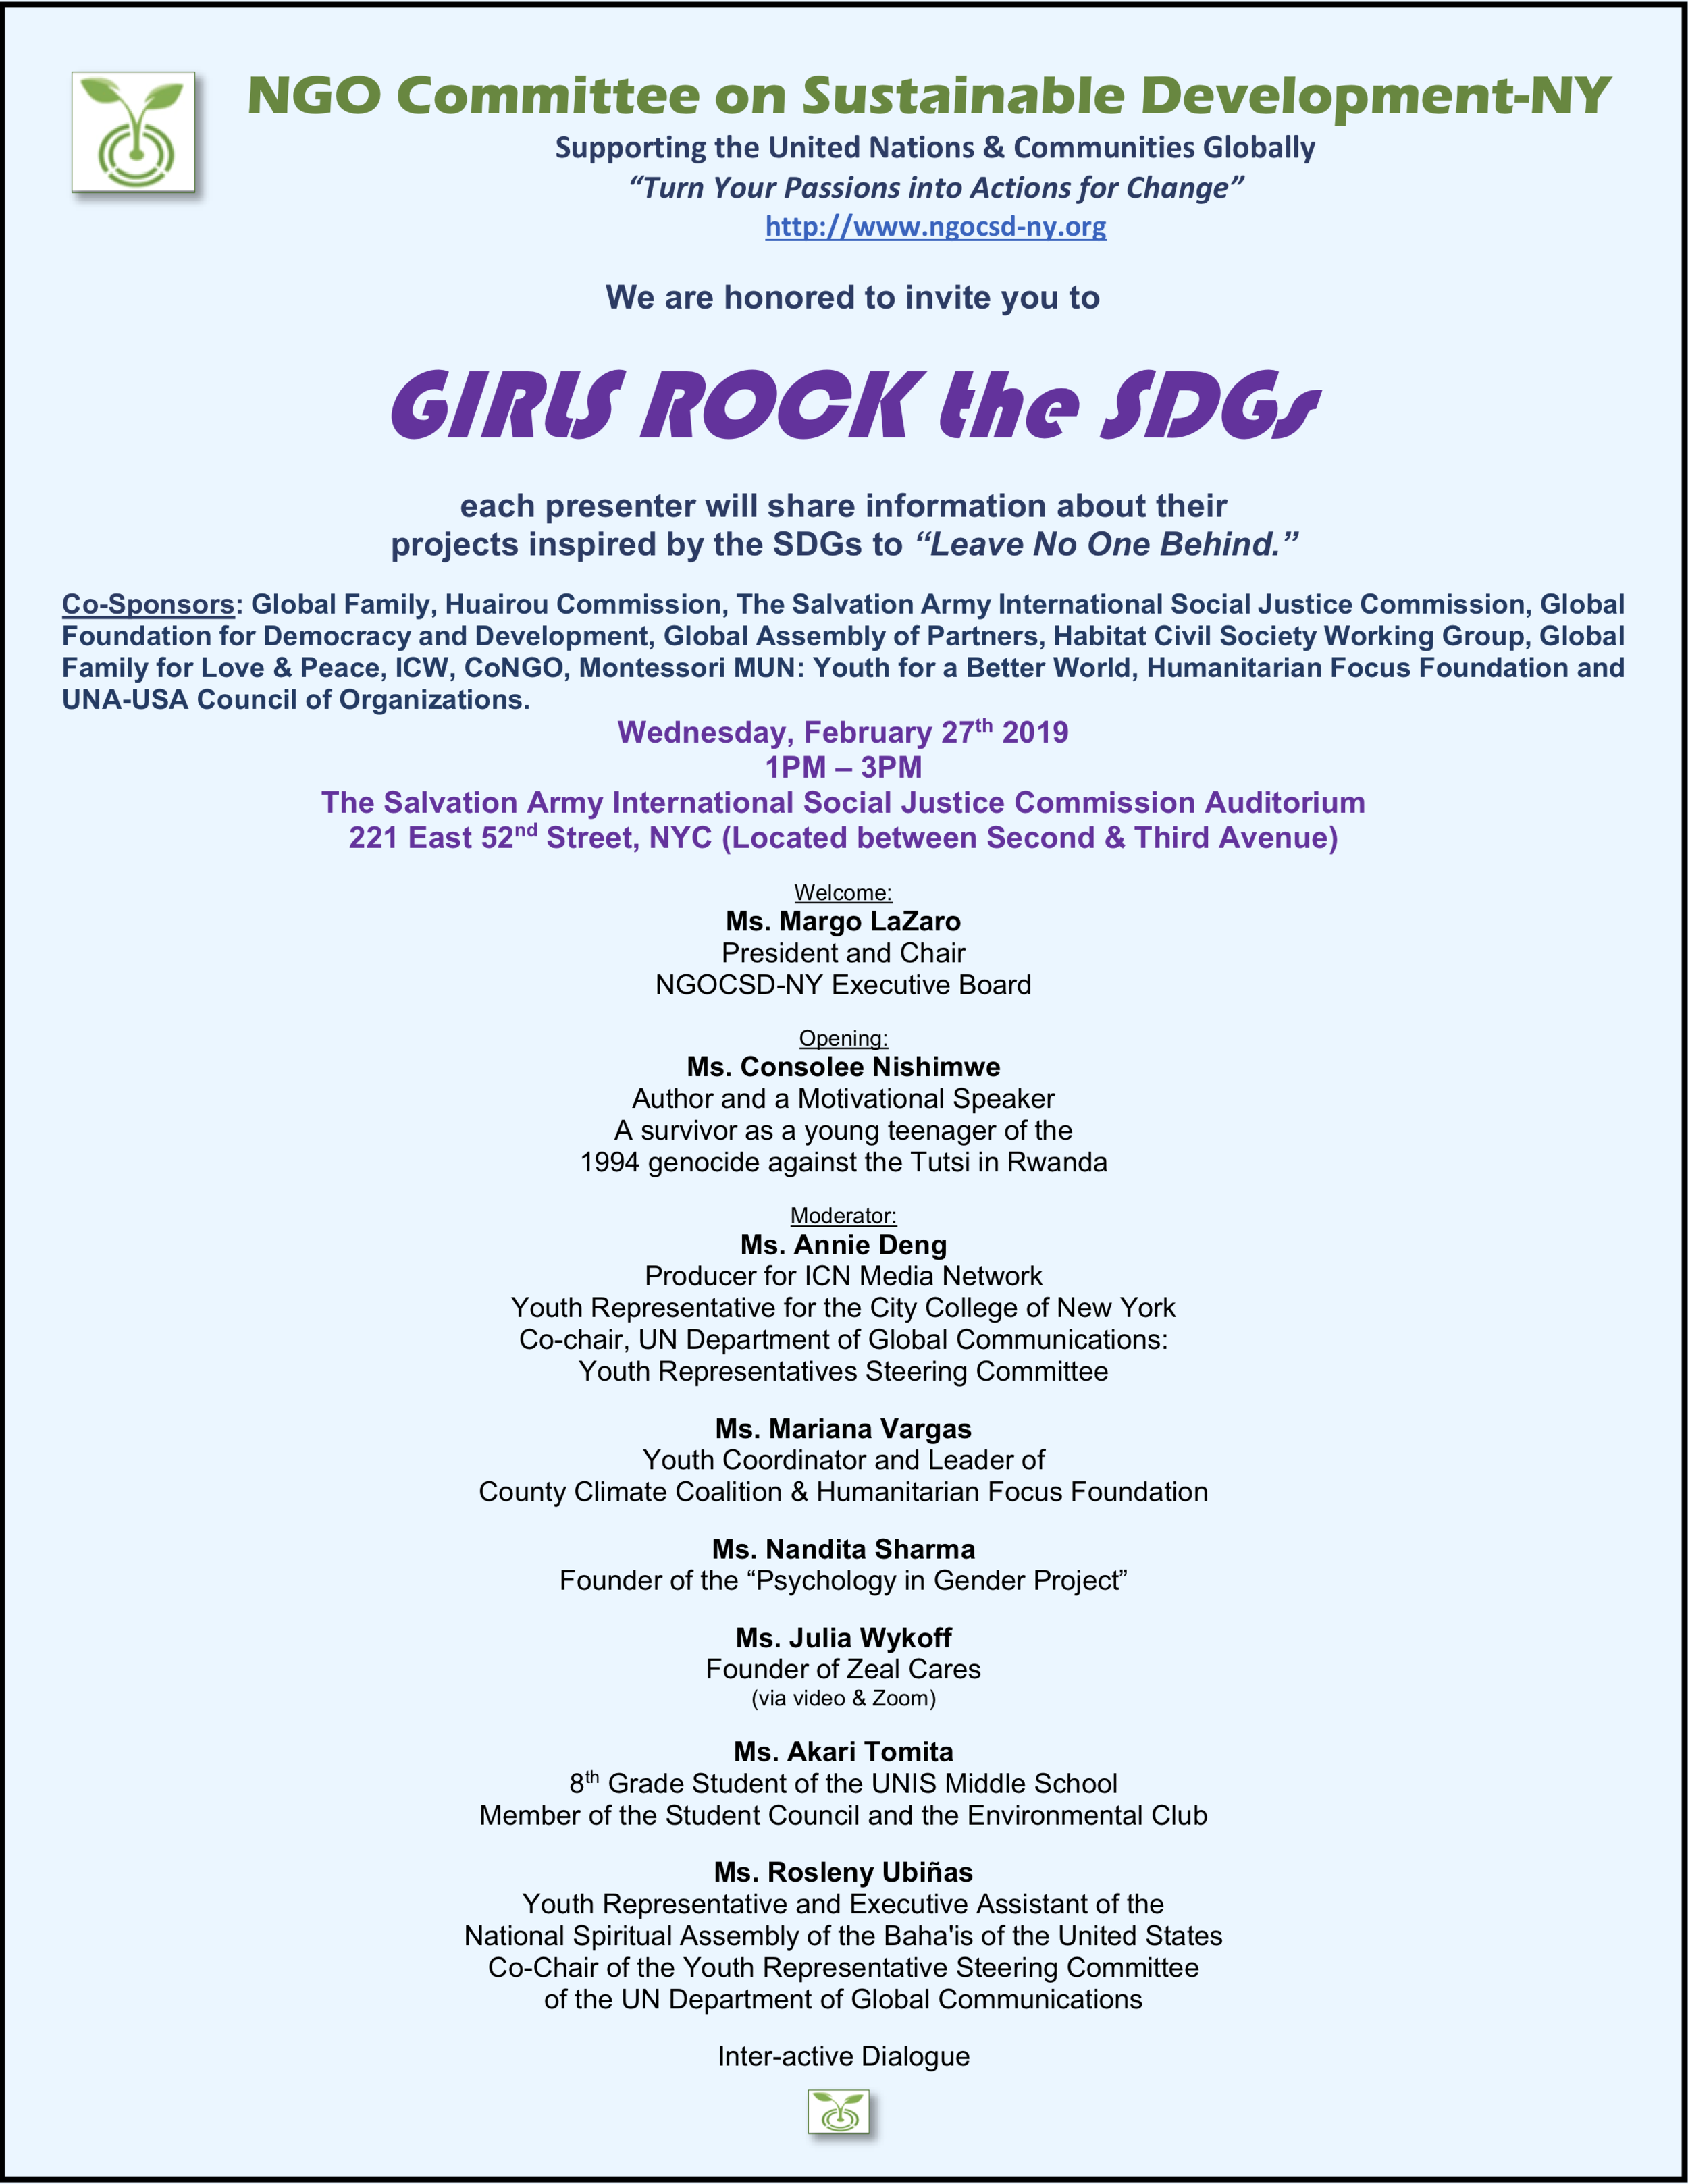 NGOCSD-NY 2-27-19 GIRLS ROCK the SDGs Invitation B1.png